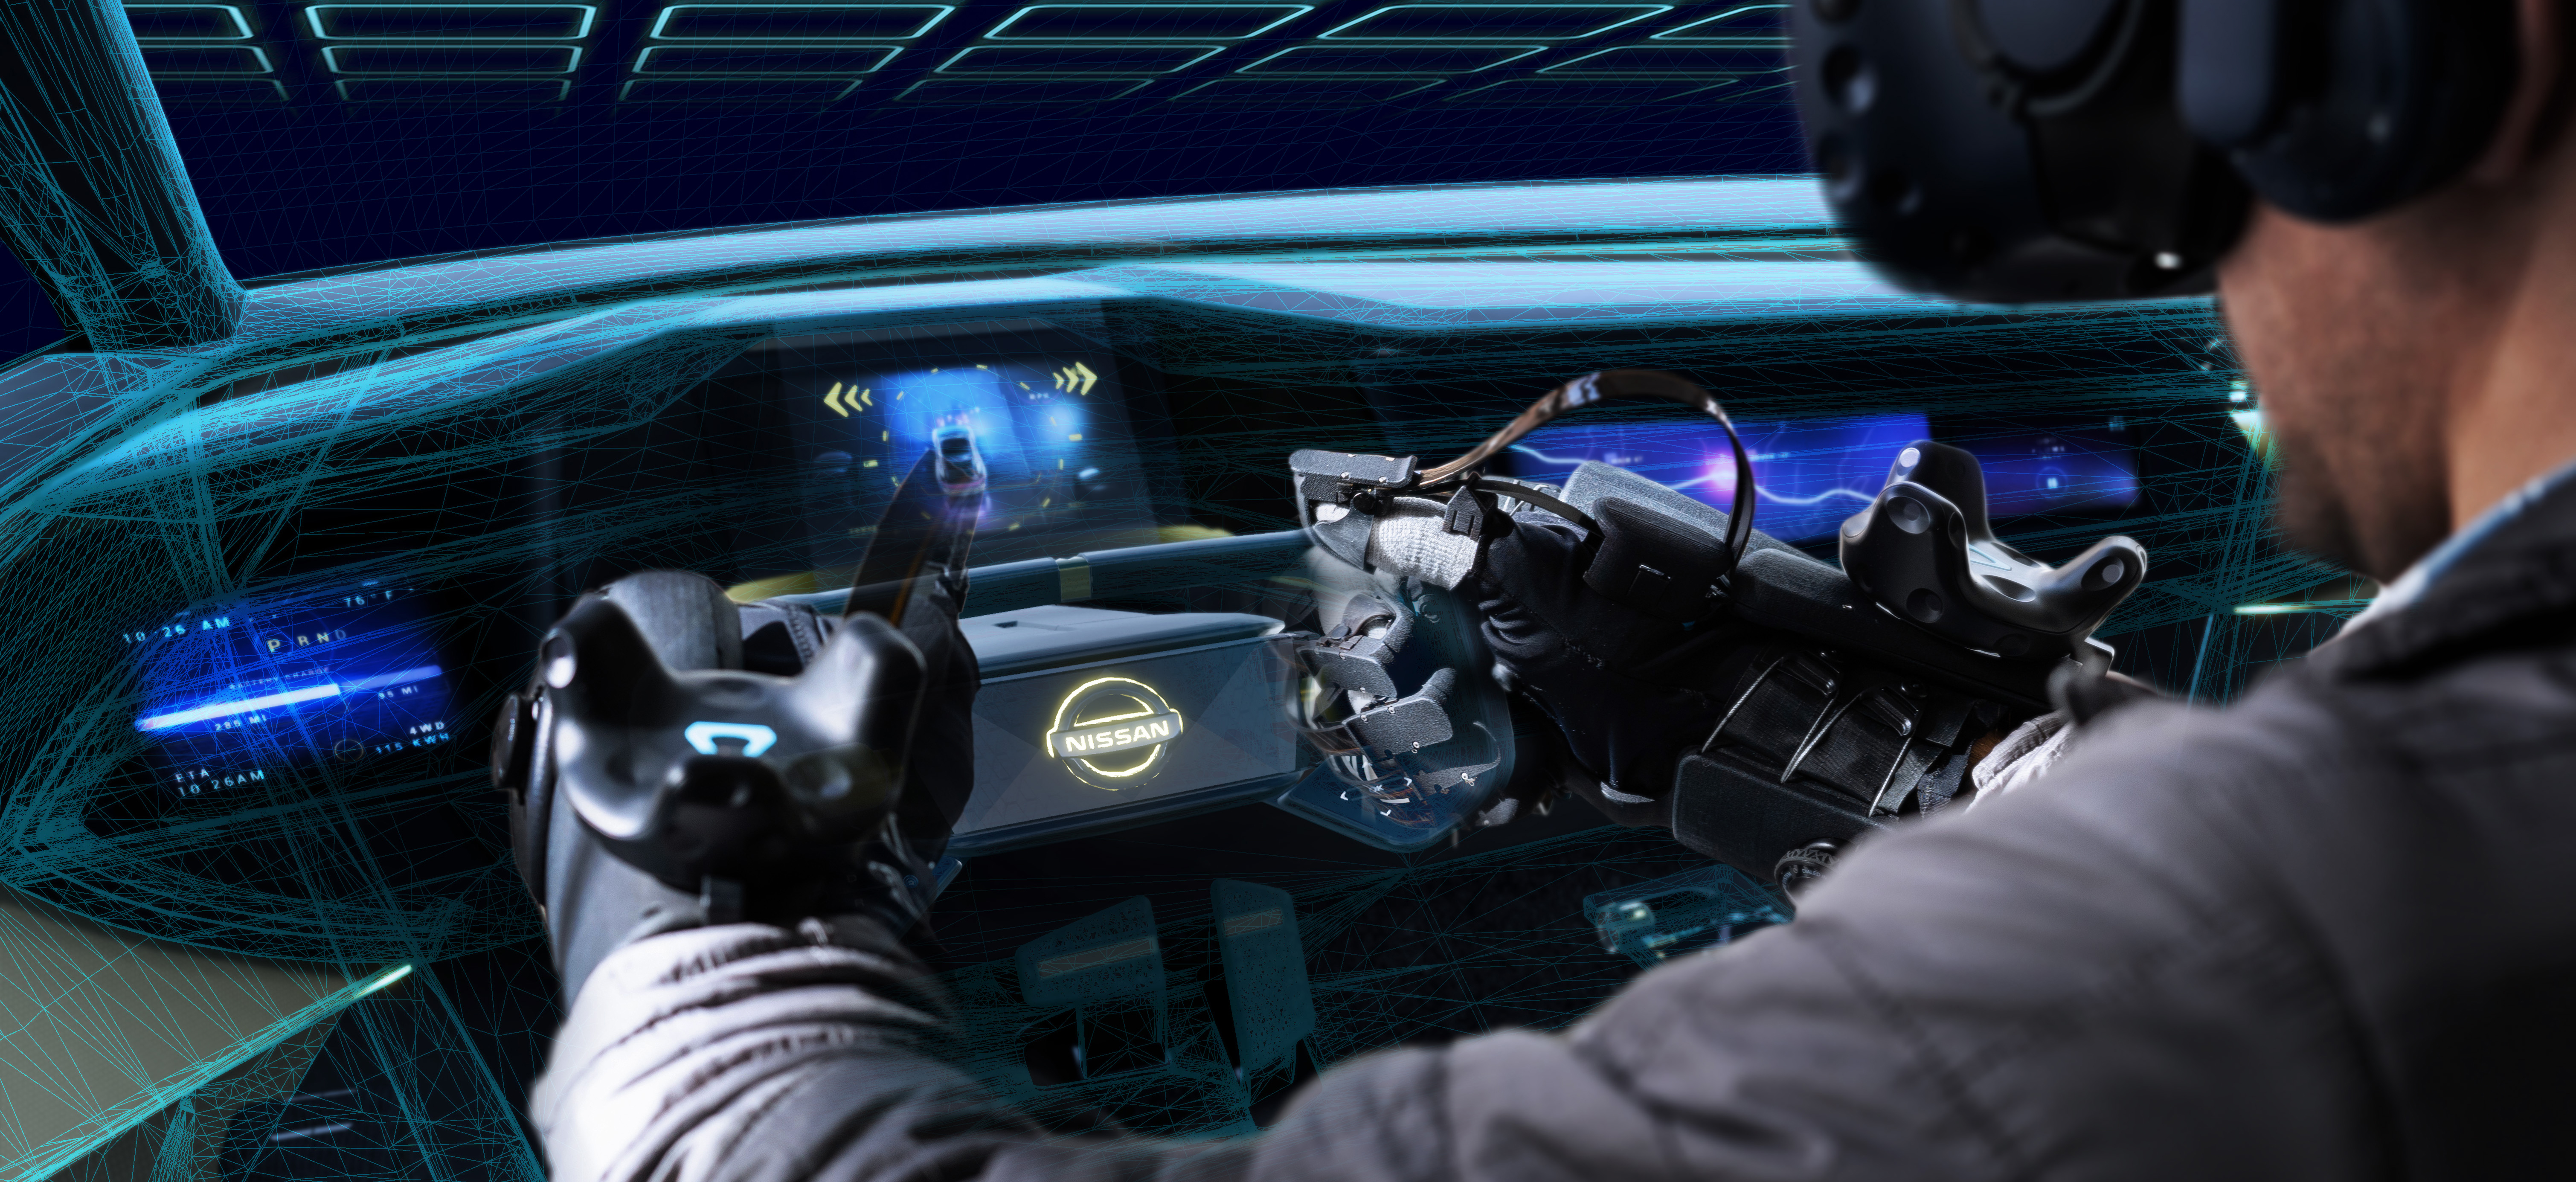 Nissan Design collaborates with HaptX to bring realistic